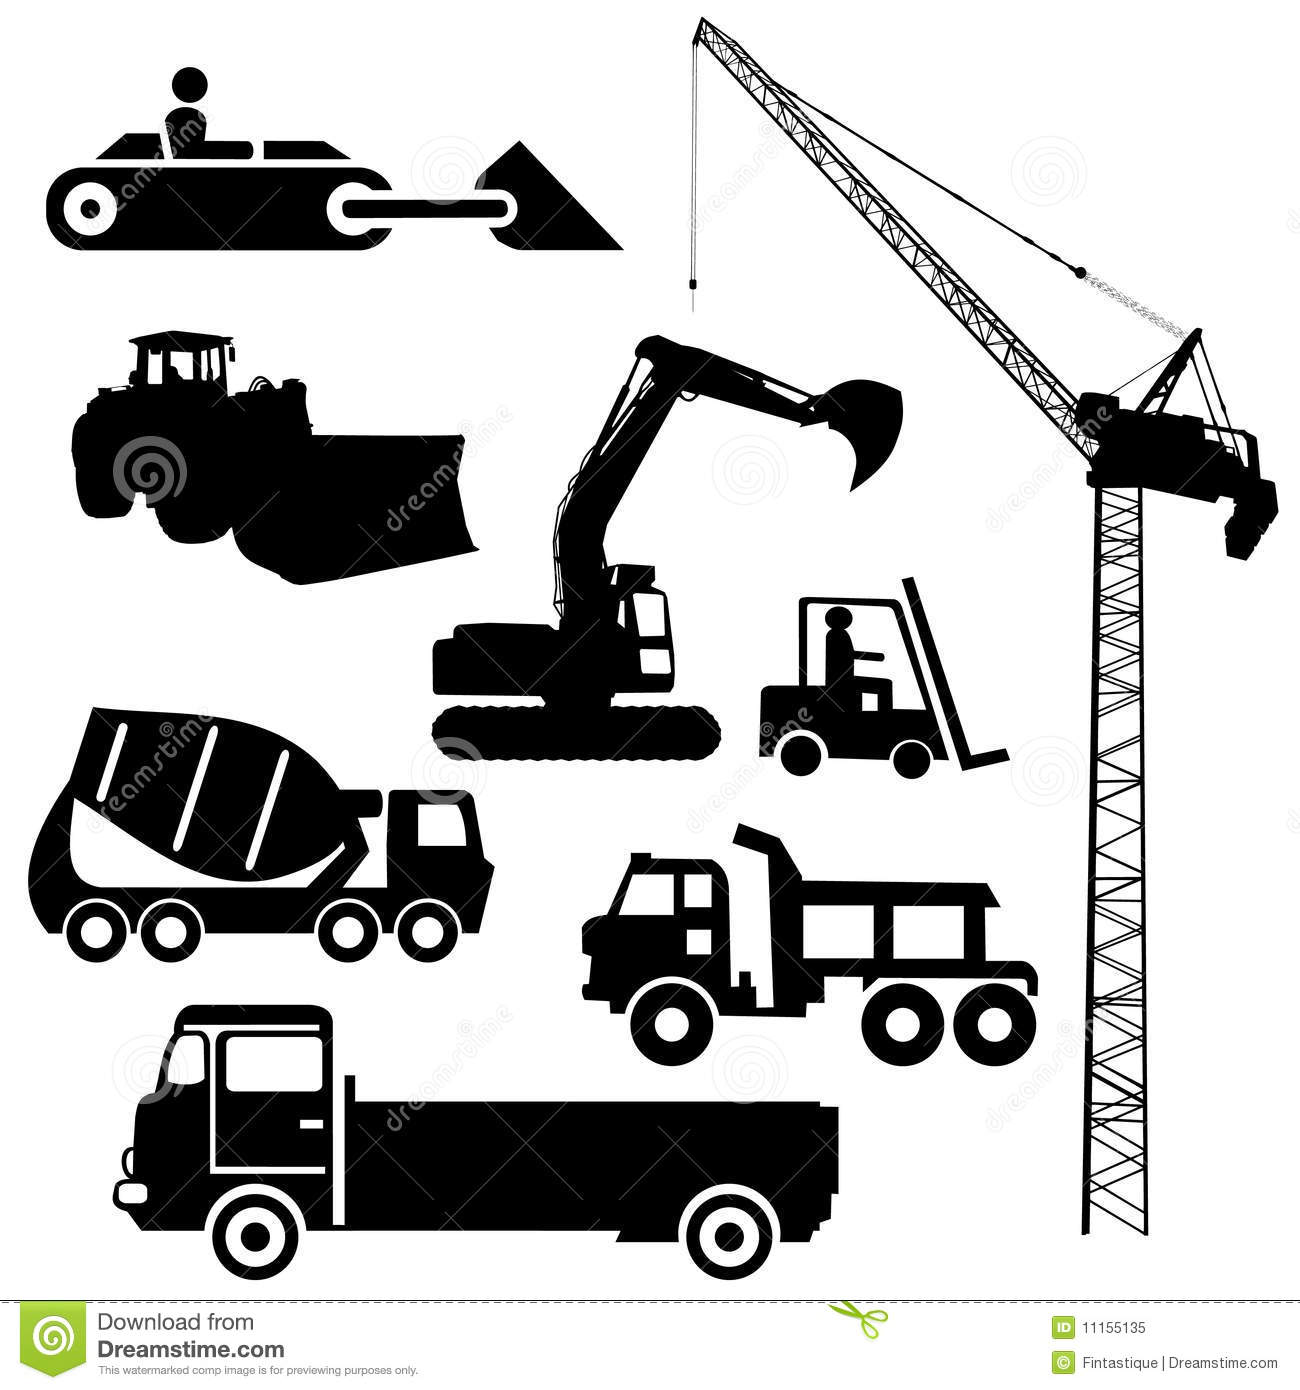 Construction Machinery Clipart